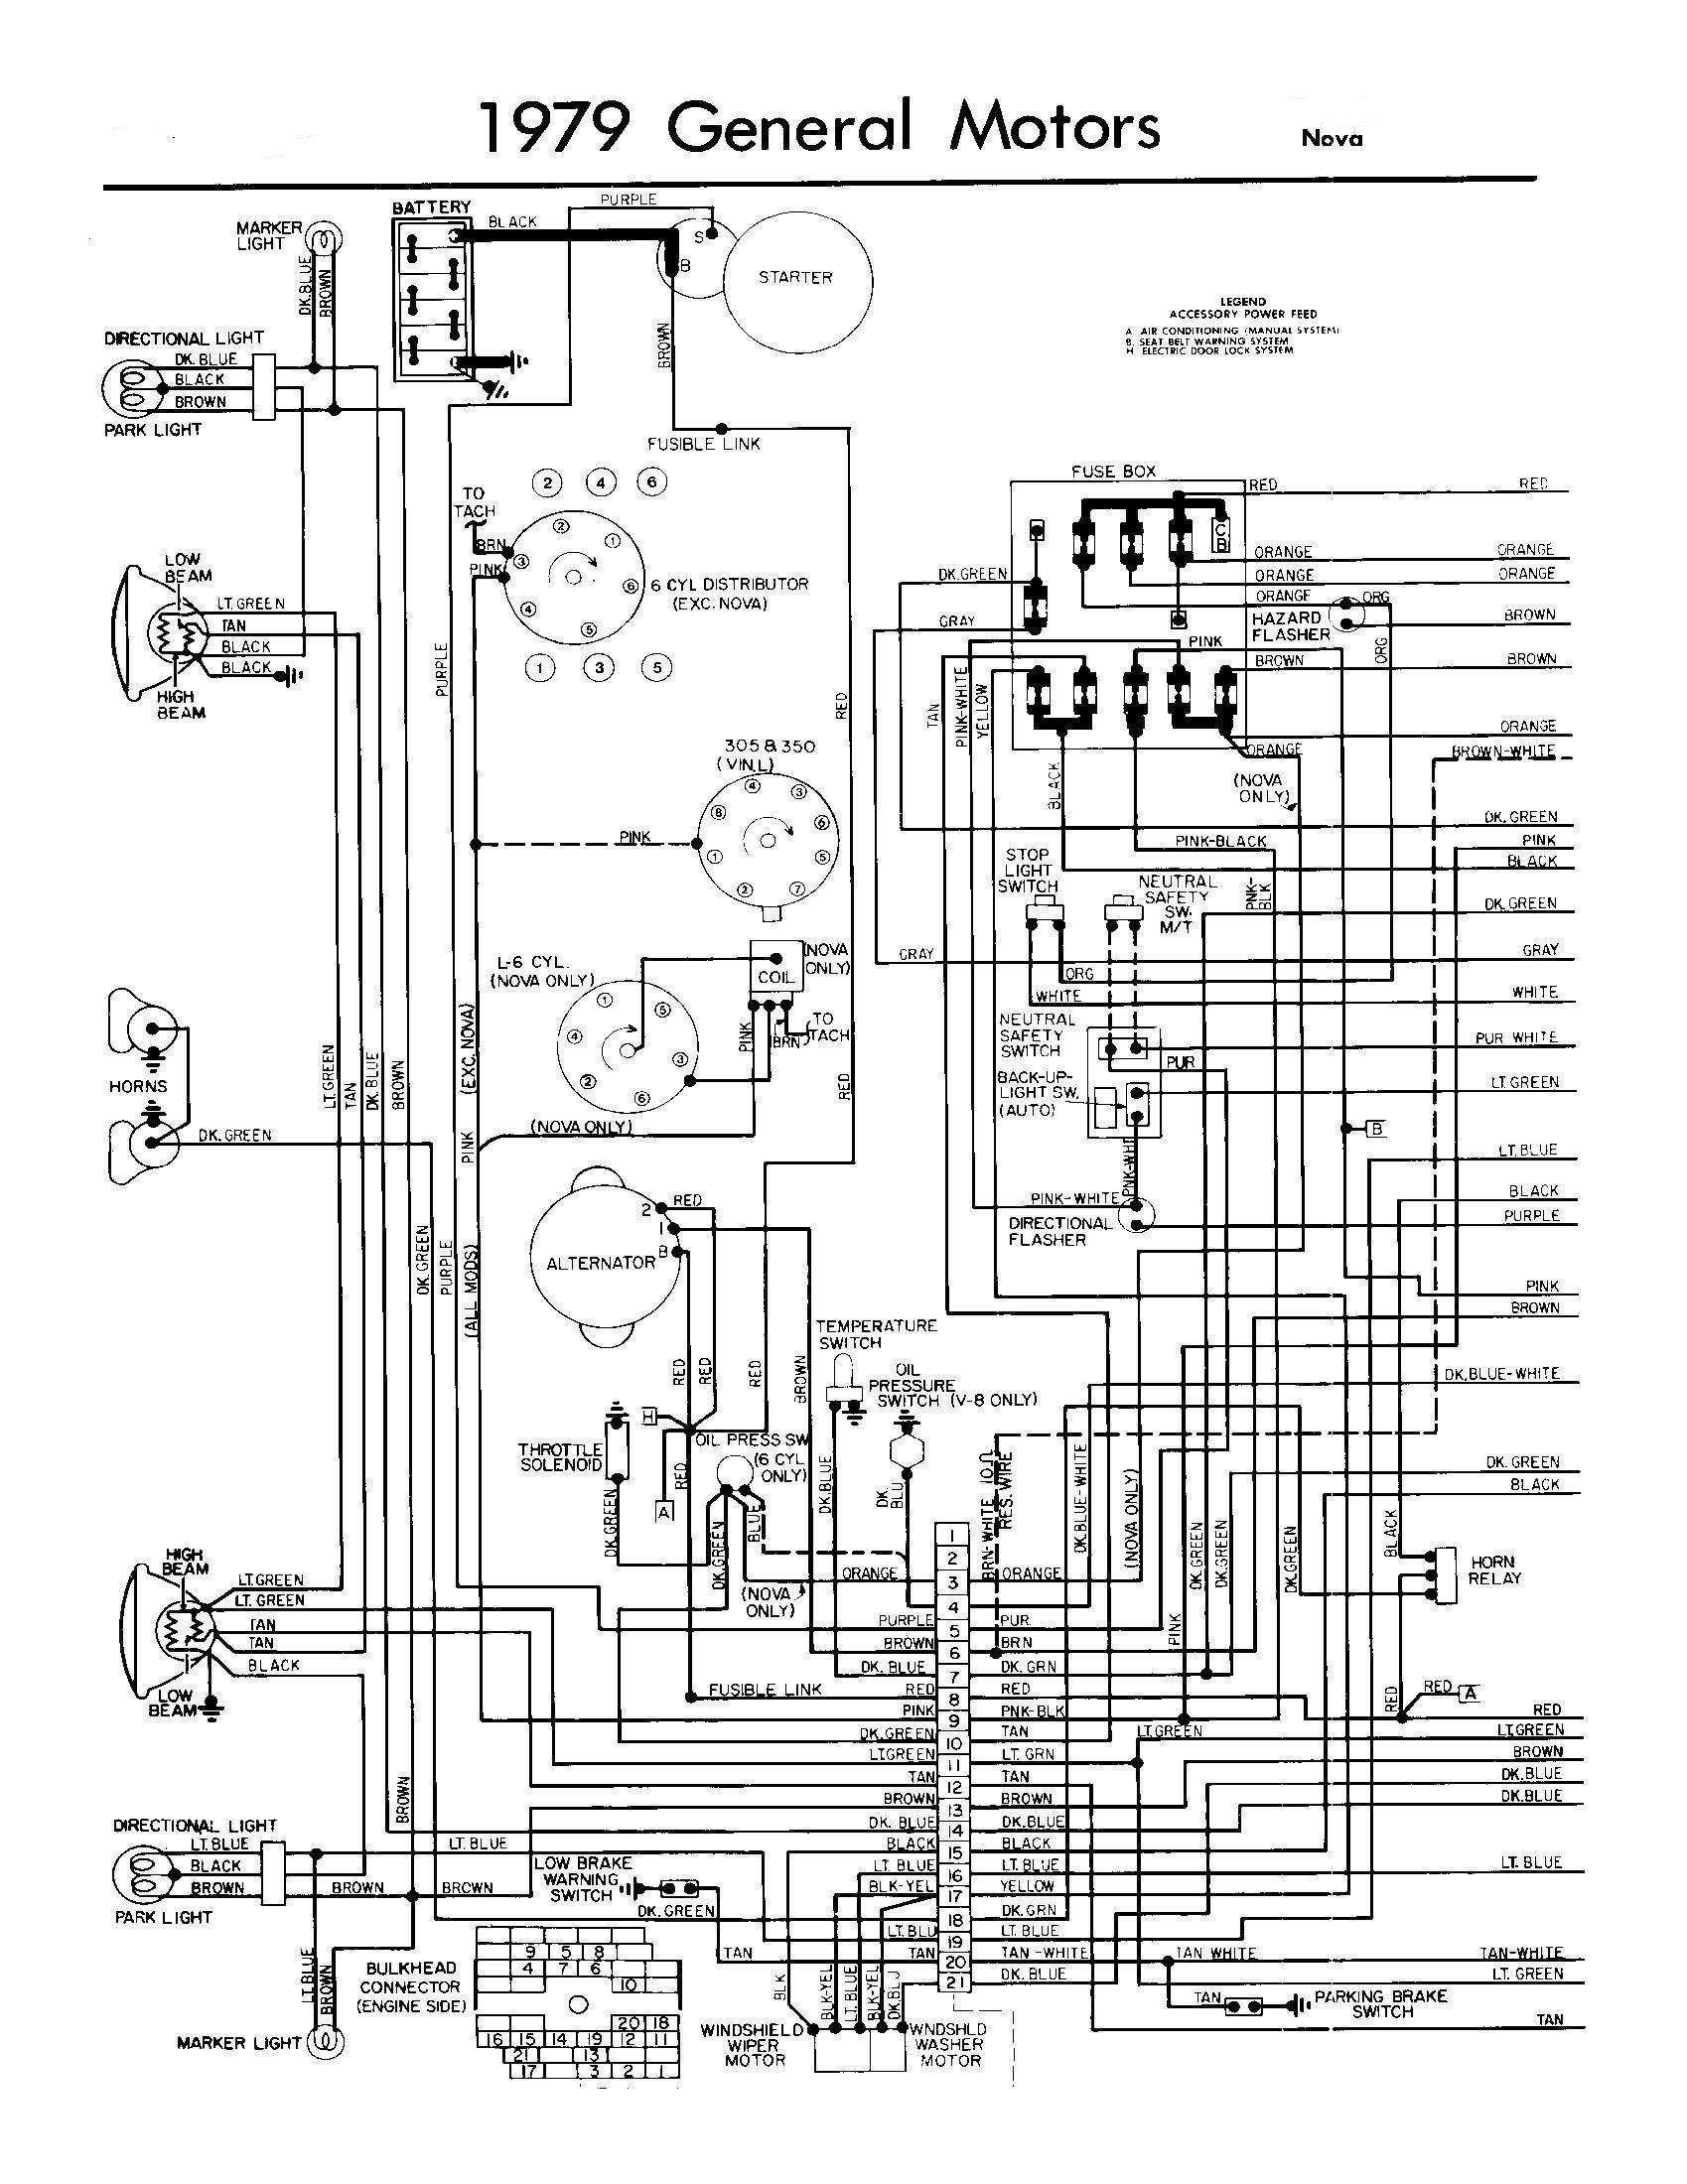 Bobcat 610 Wiring Diagram 743 Schemes Hydraulic Starting Know About U2022 743b